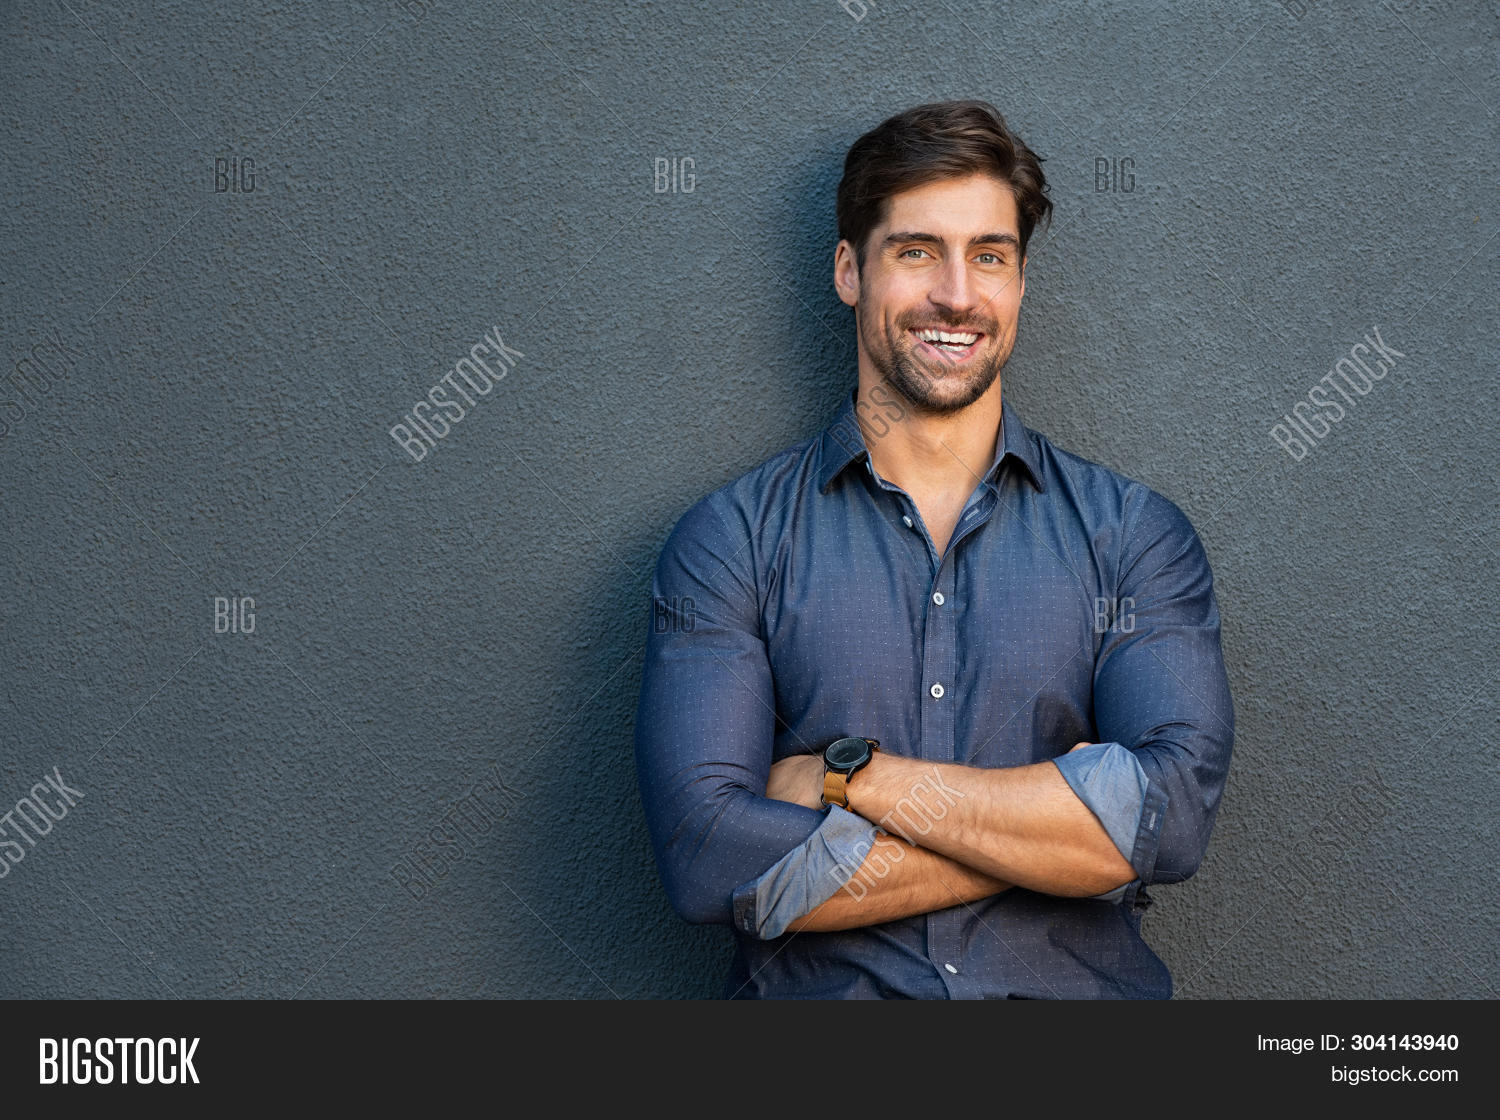 attractive,background,business,business casual,business man,businessman,casual,casual business,cheerful,confident,copy space,crossed arms,expression,face,friendly,gray,gray background,grey background,grey wall,guy,handsome,handsome man,happy,hispanic,isolated,joyful,latin,laugh,looking,looking at camera,mid adult man,people,portrait,pride,professional,proud,reliability,satisfaction,satisfied,smile,standing,stylish,success,successful,toothy smile,wall,work,young,young man